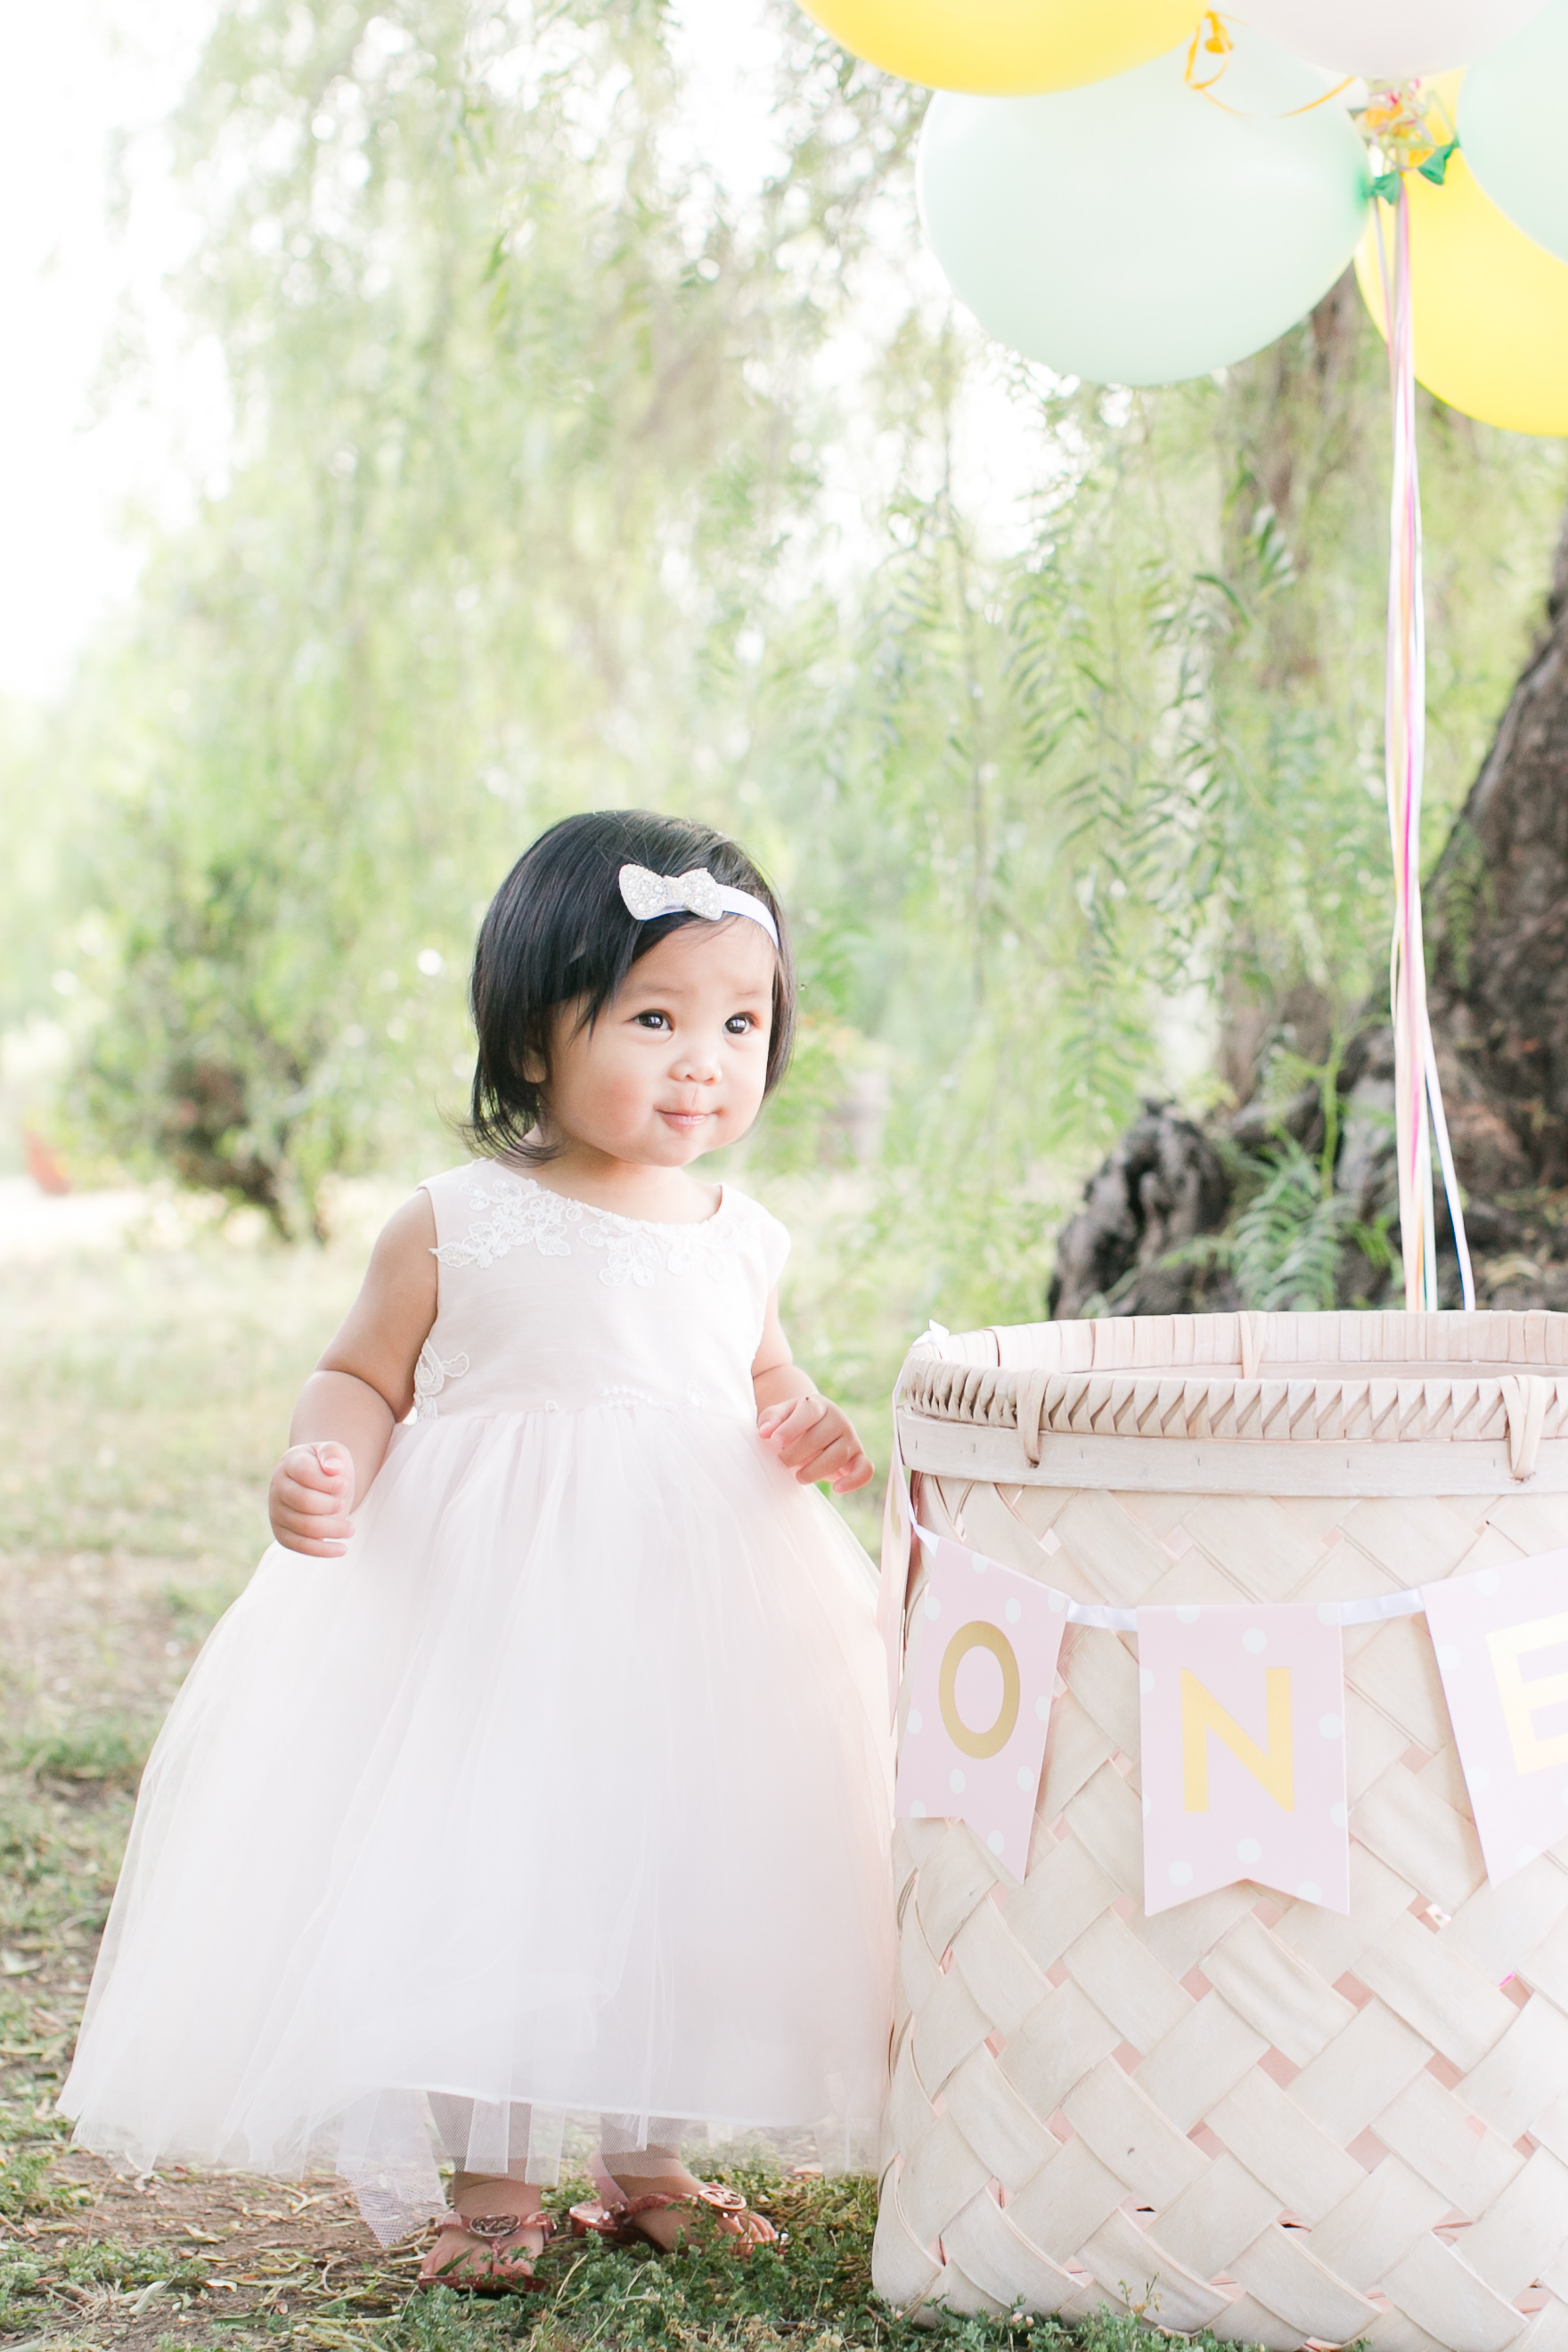 NEMA Photography J.Pham048 - Baby Justine // One year old portraits